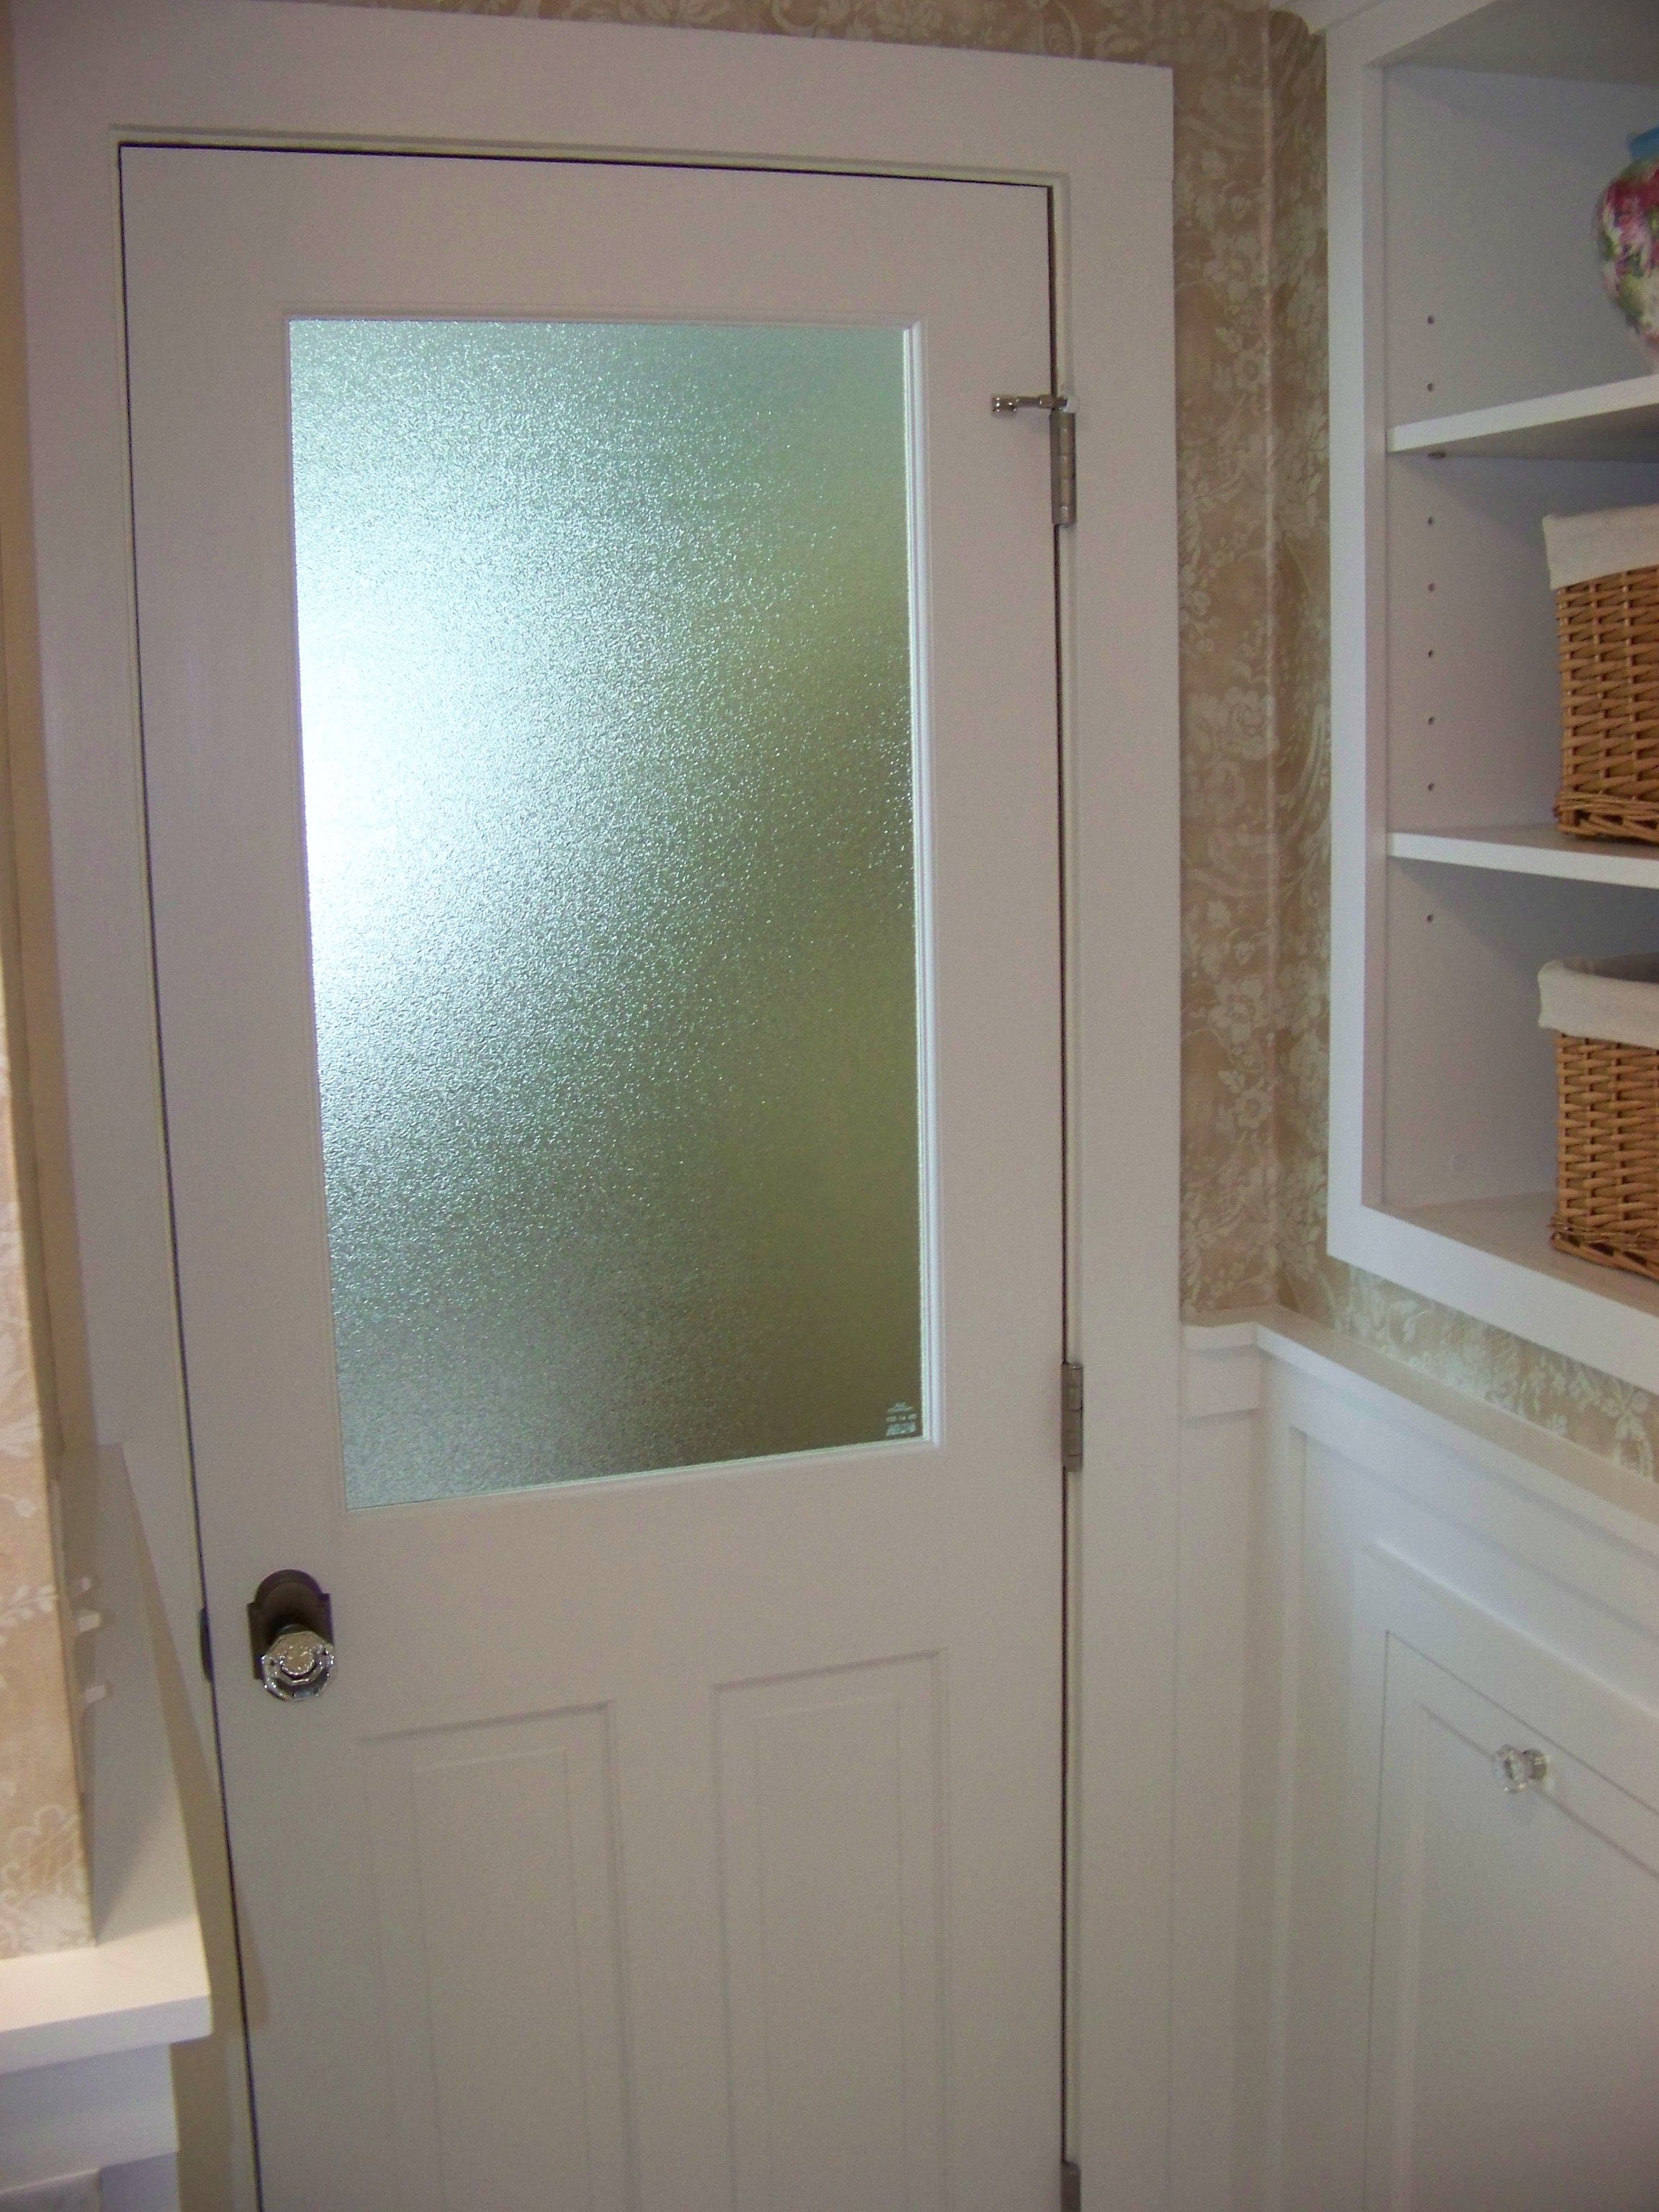 Frosted Glass Bathroom Door Ideas For Small Spaces